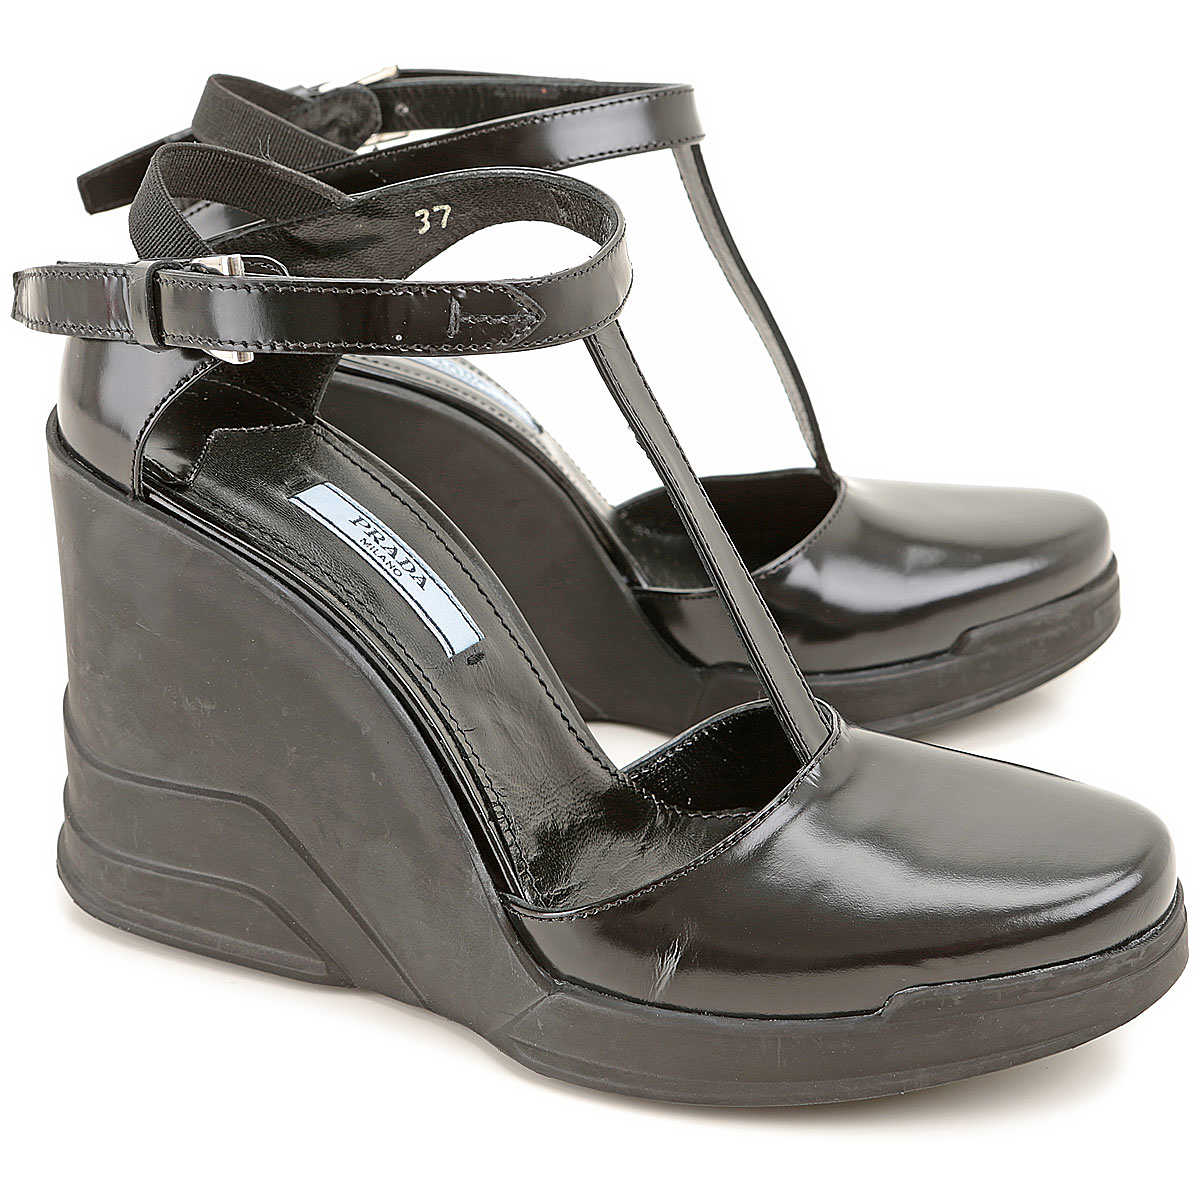 Prada Wedges for Women On Sale in Outlet Black DK - GOOFASH - Womens HOUSE SHOES